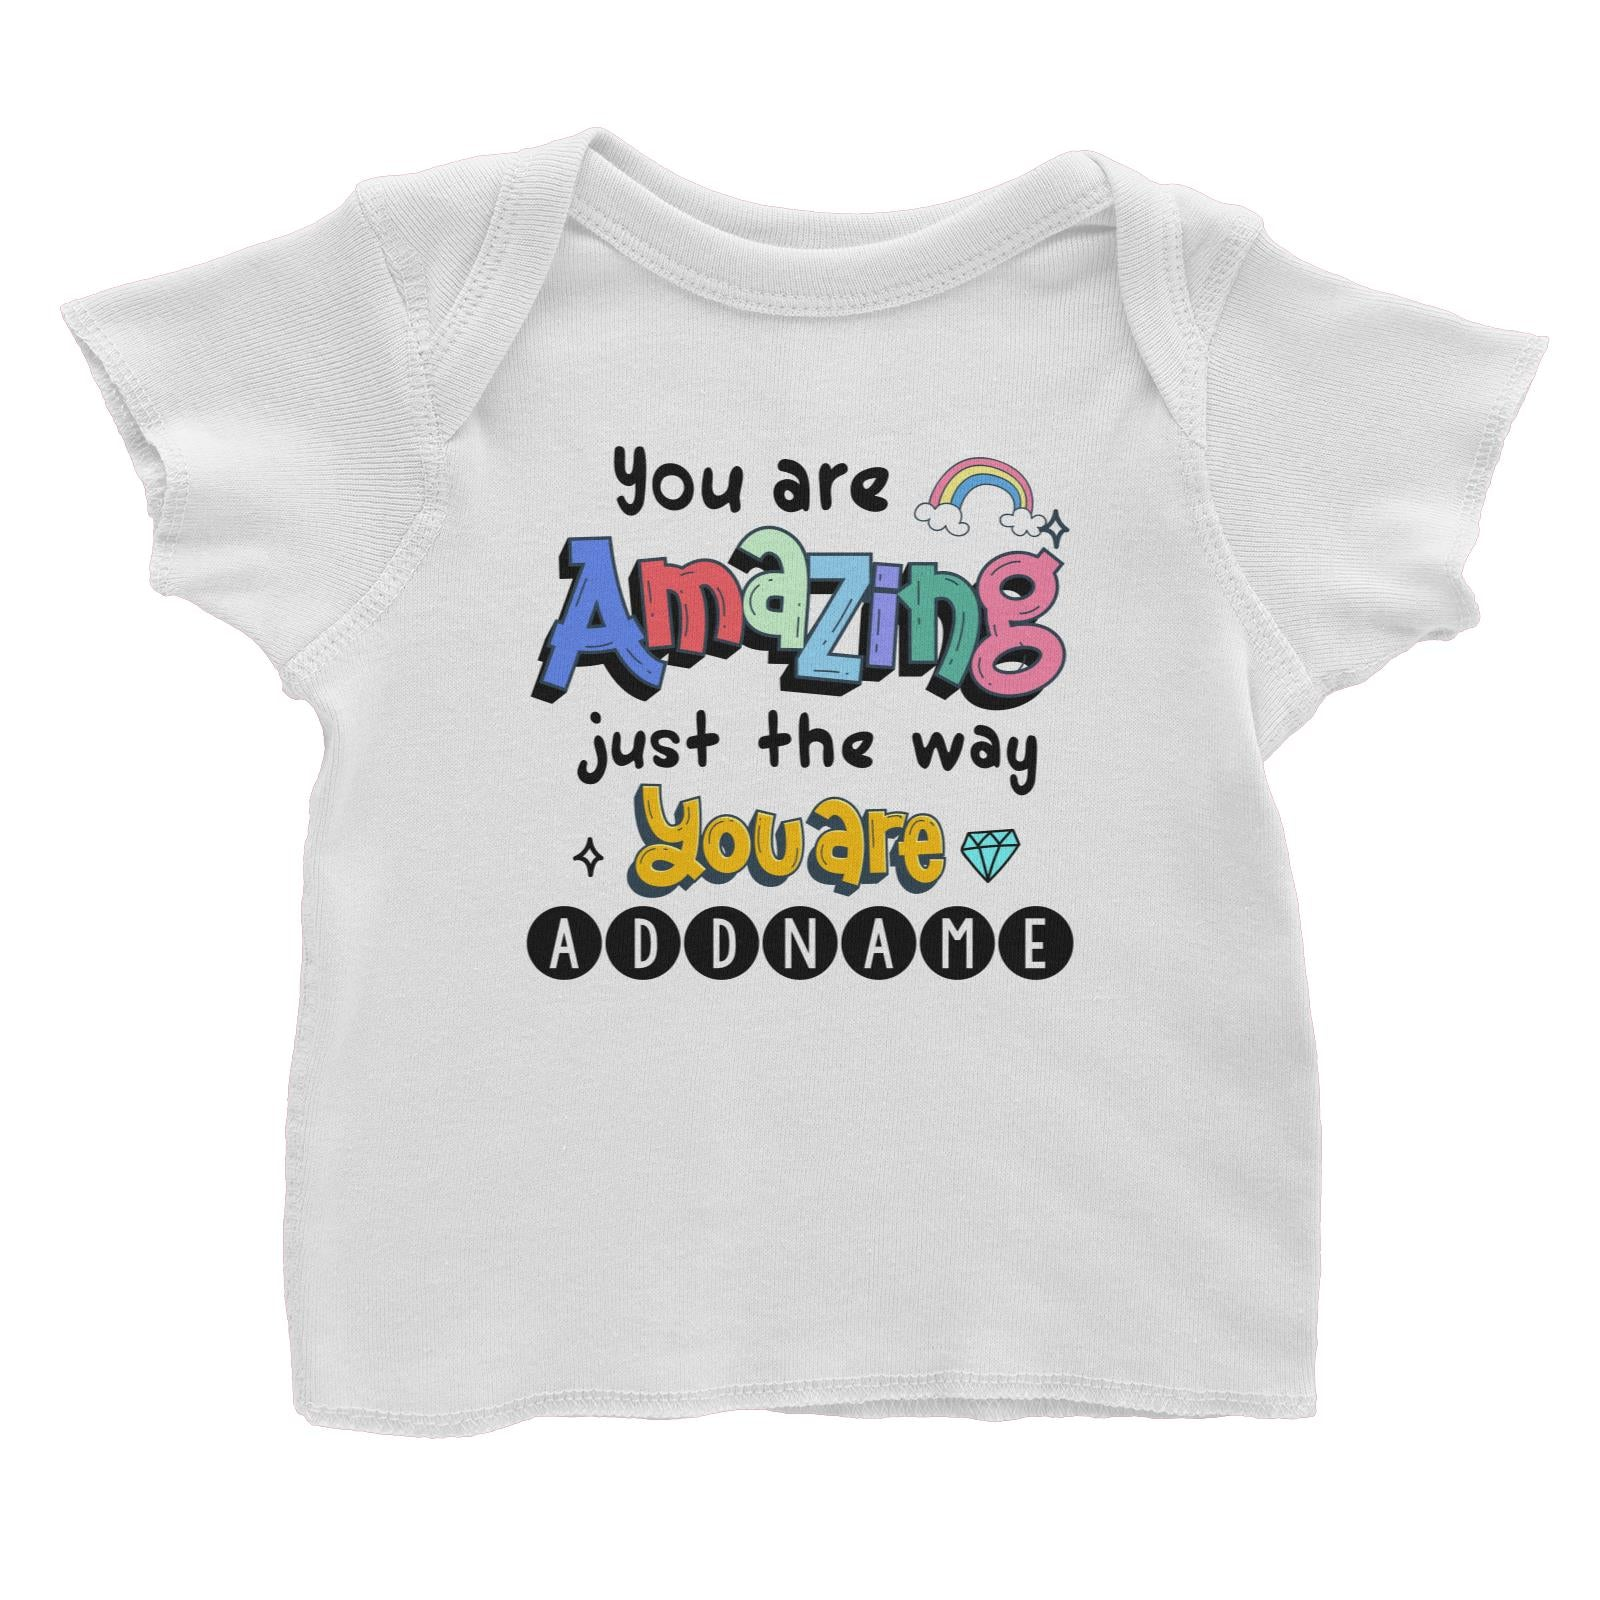 Children's Day Gift Series You Are Amazing Just The Way You Are Addname Baby T-Shirt